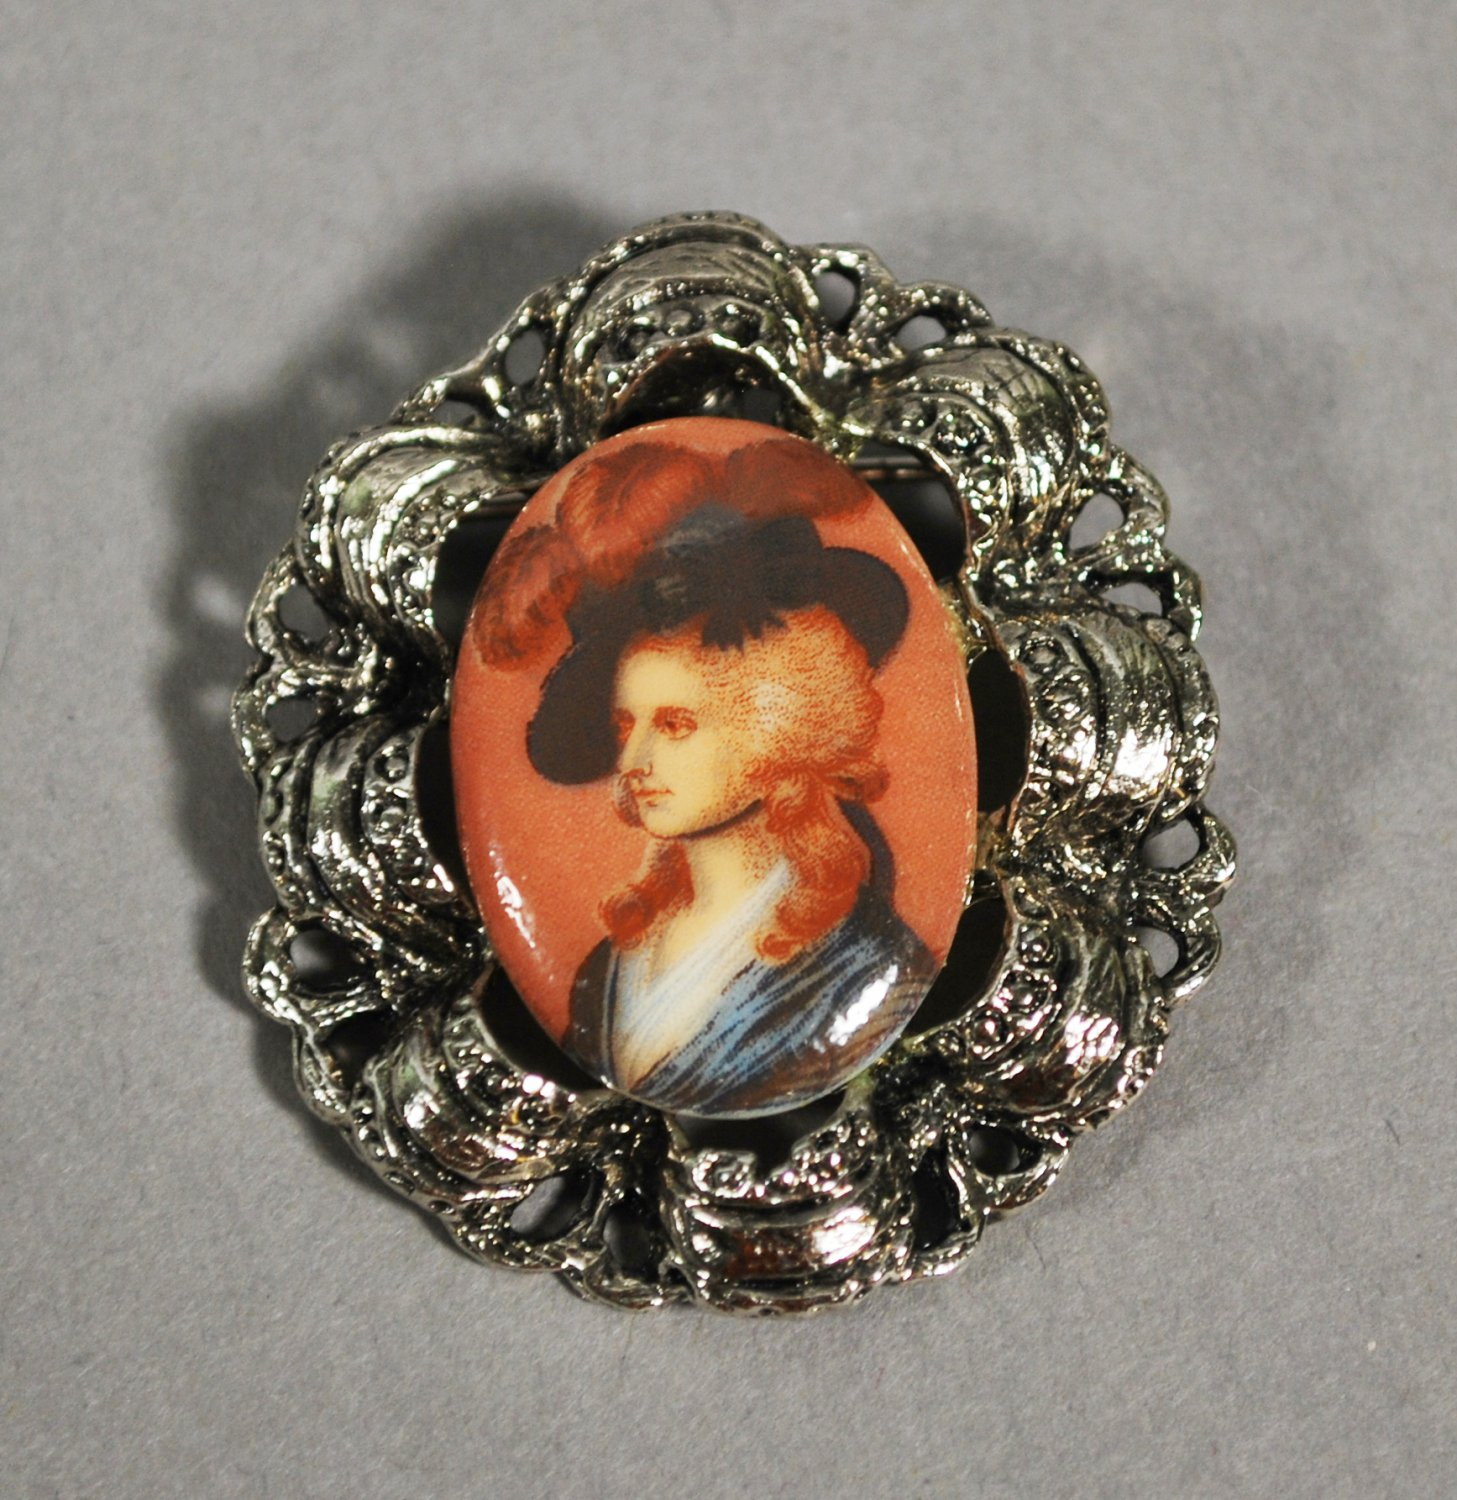 Vintage Brooch 17th Century Male Plume Hat in Silvertone Ribbon Metal Setting